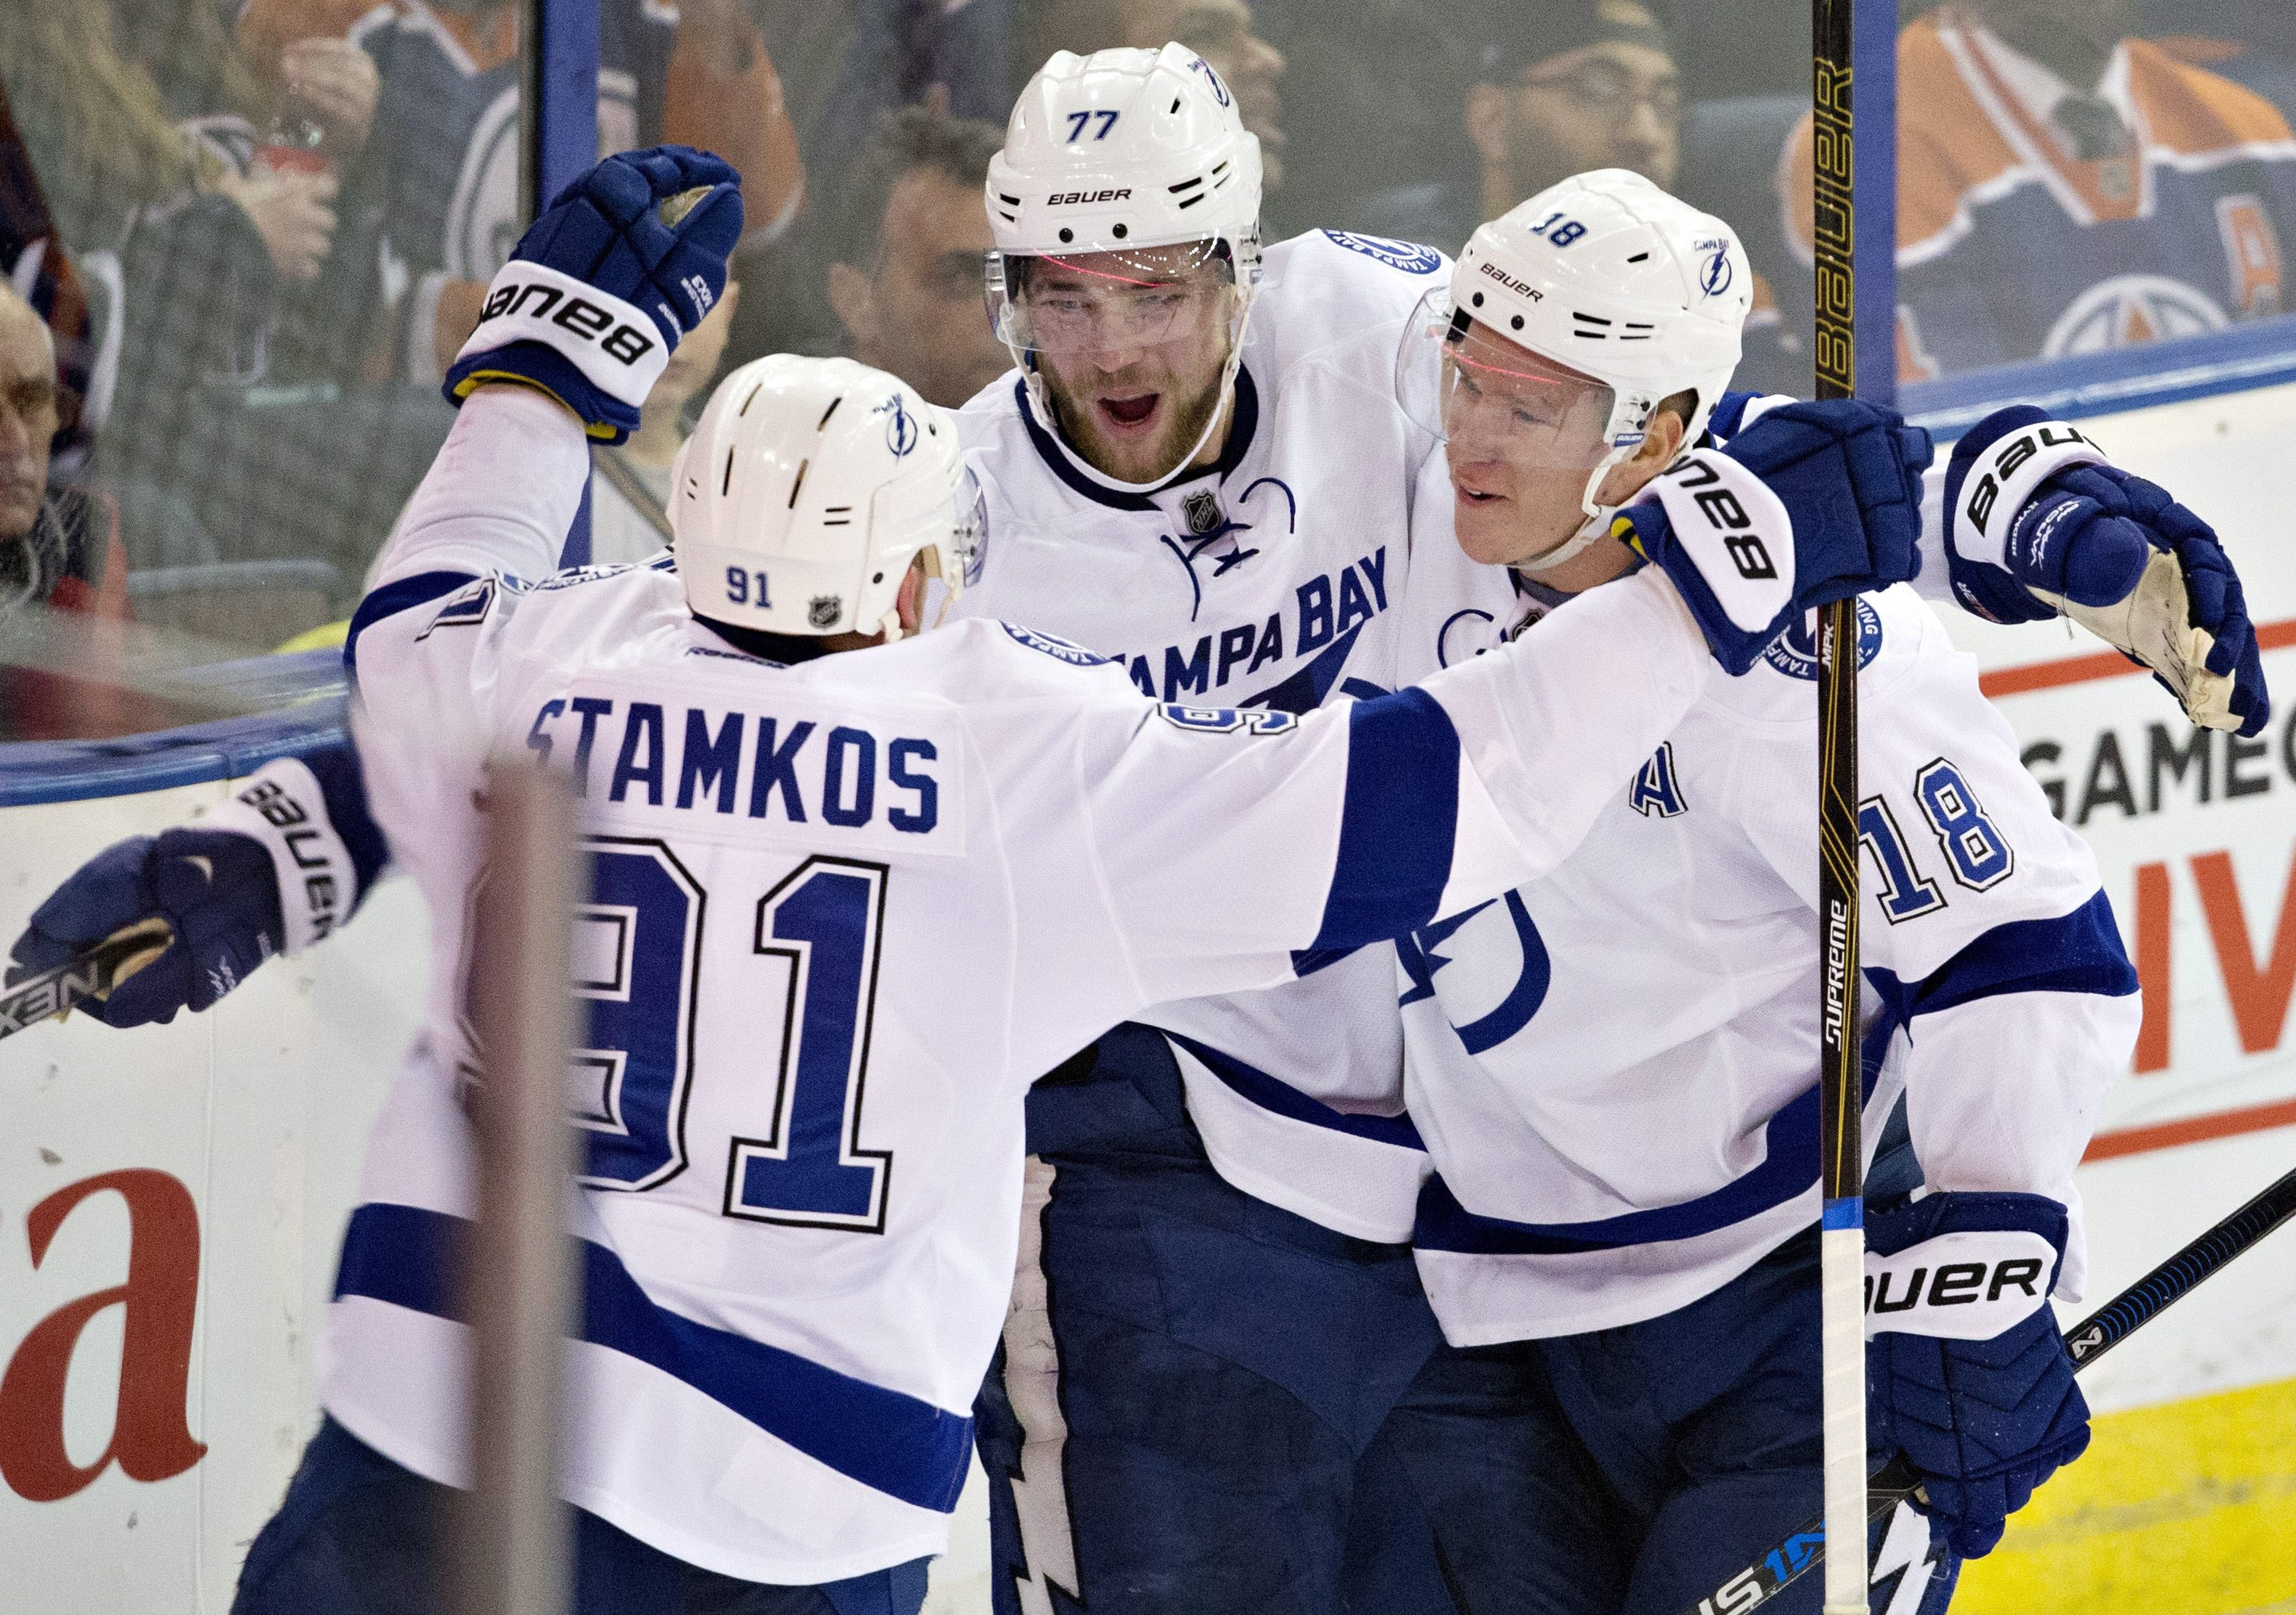 Tampa Bay Lightning's Steven Stamkos (91), Victor Hedman (77) and Ondrej Palat (18) celebrate a goal against the Edmonton Oilers during the third period of an NHL hockey game Friday, Jan. 8, 2016, in Edmonton, Alberta. (Jason Franson/The Canadian Press vi